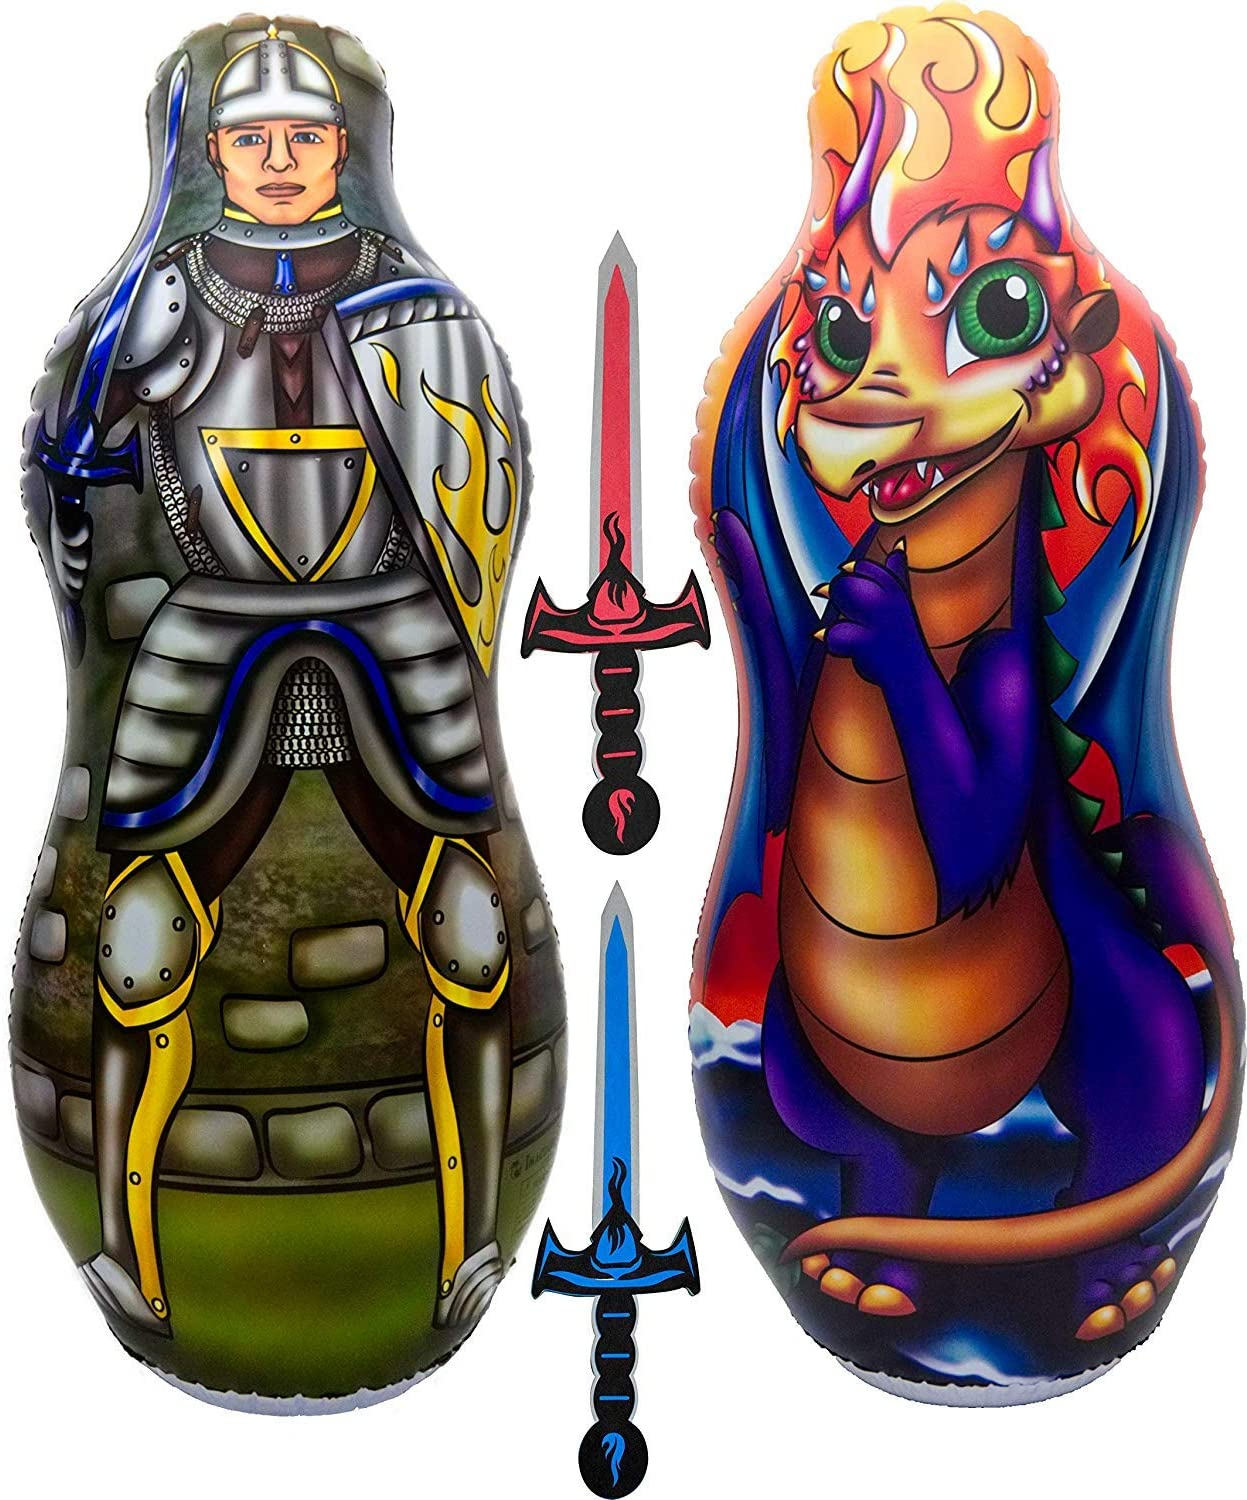 "Inflatable Punching Bag & Foam Sword Set | One 48"" Tall Double Side Bop Bag (Knight on One Side & Dragon on Reverse Side) and Two Soft Swords 